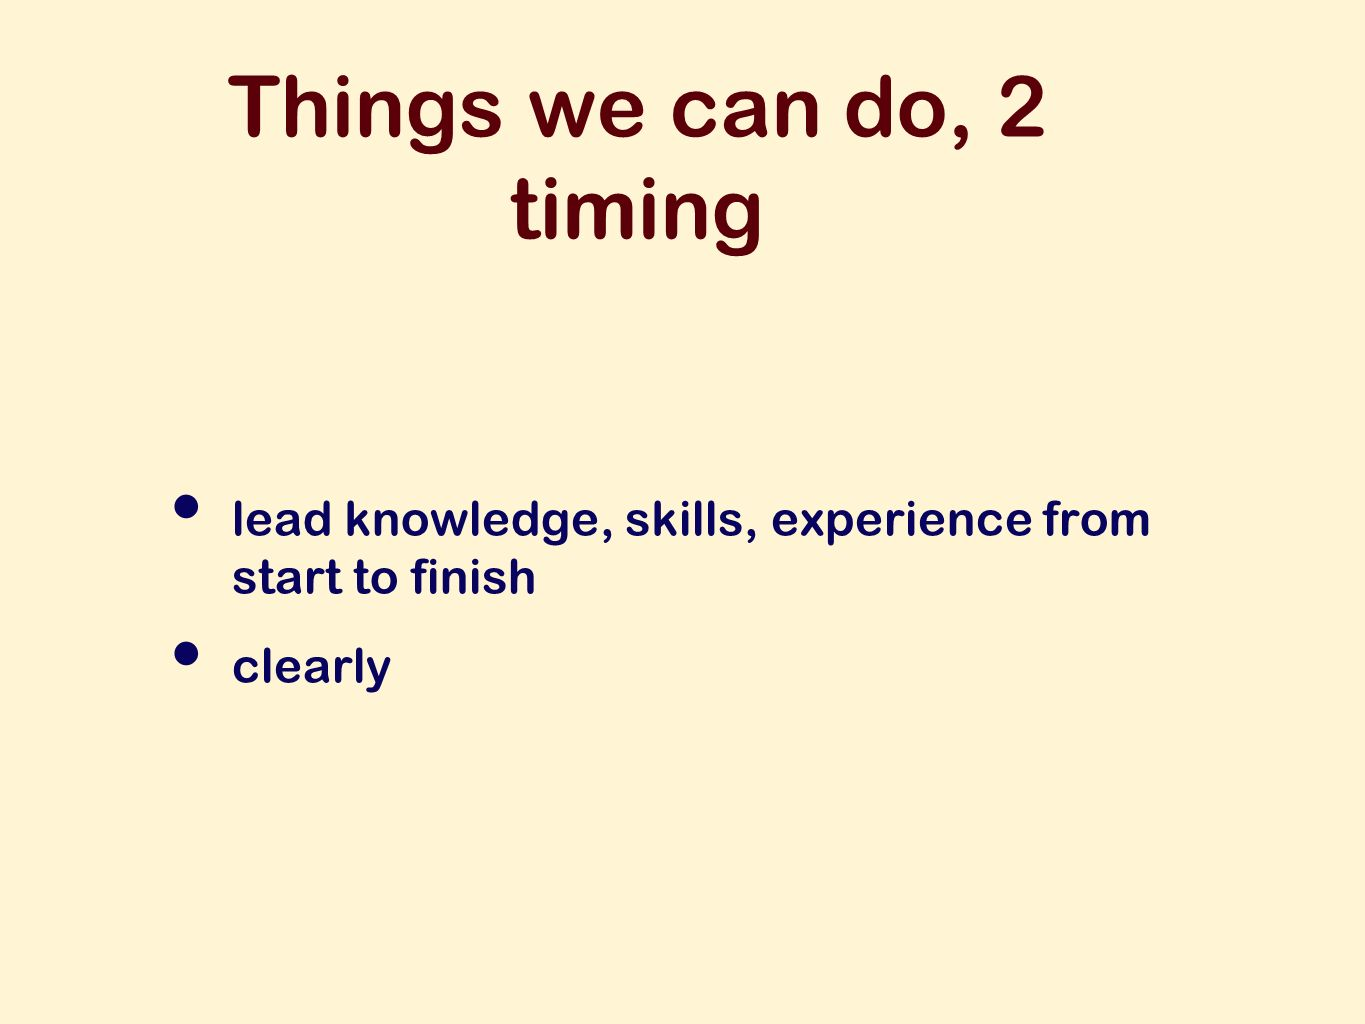 Things we can do, 2 timing lead knowledge, skills, experience from start to finish clearly